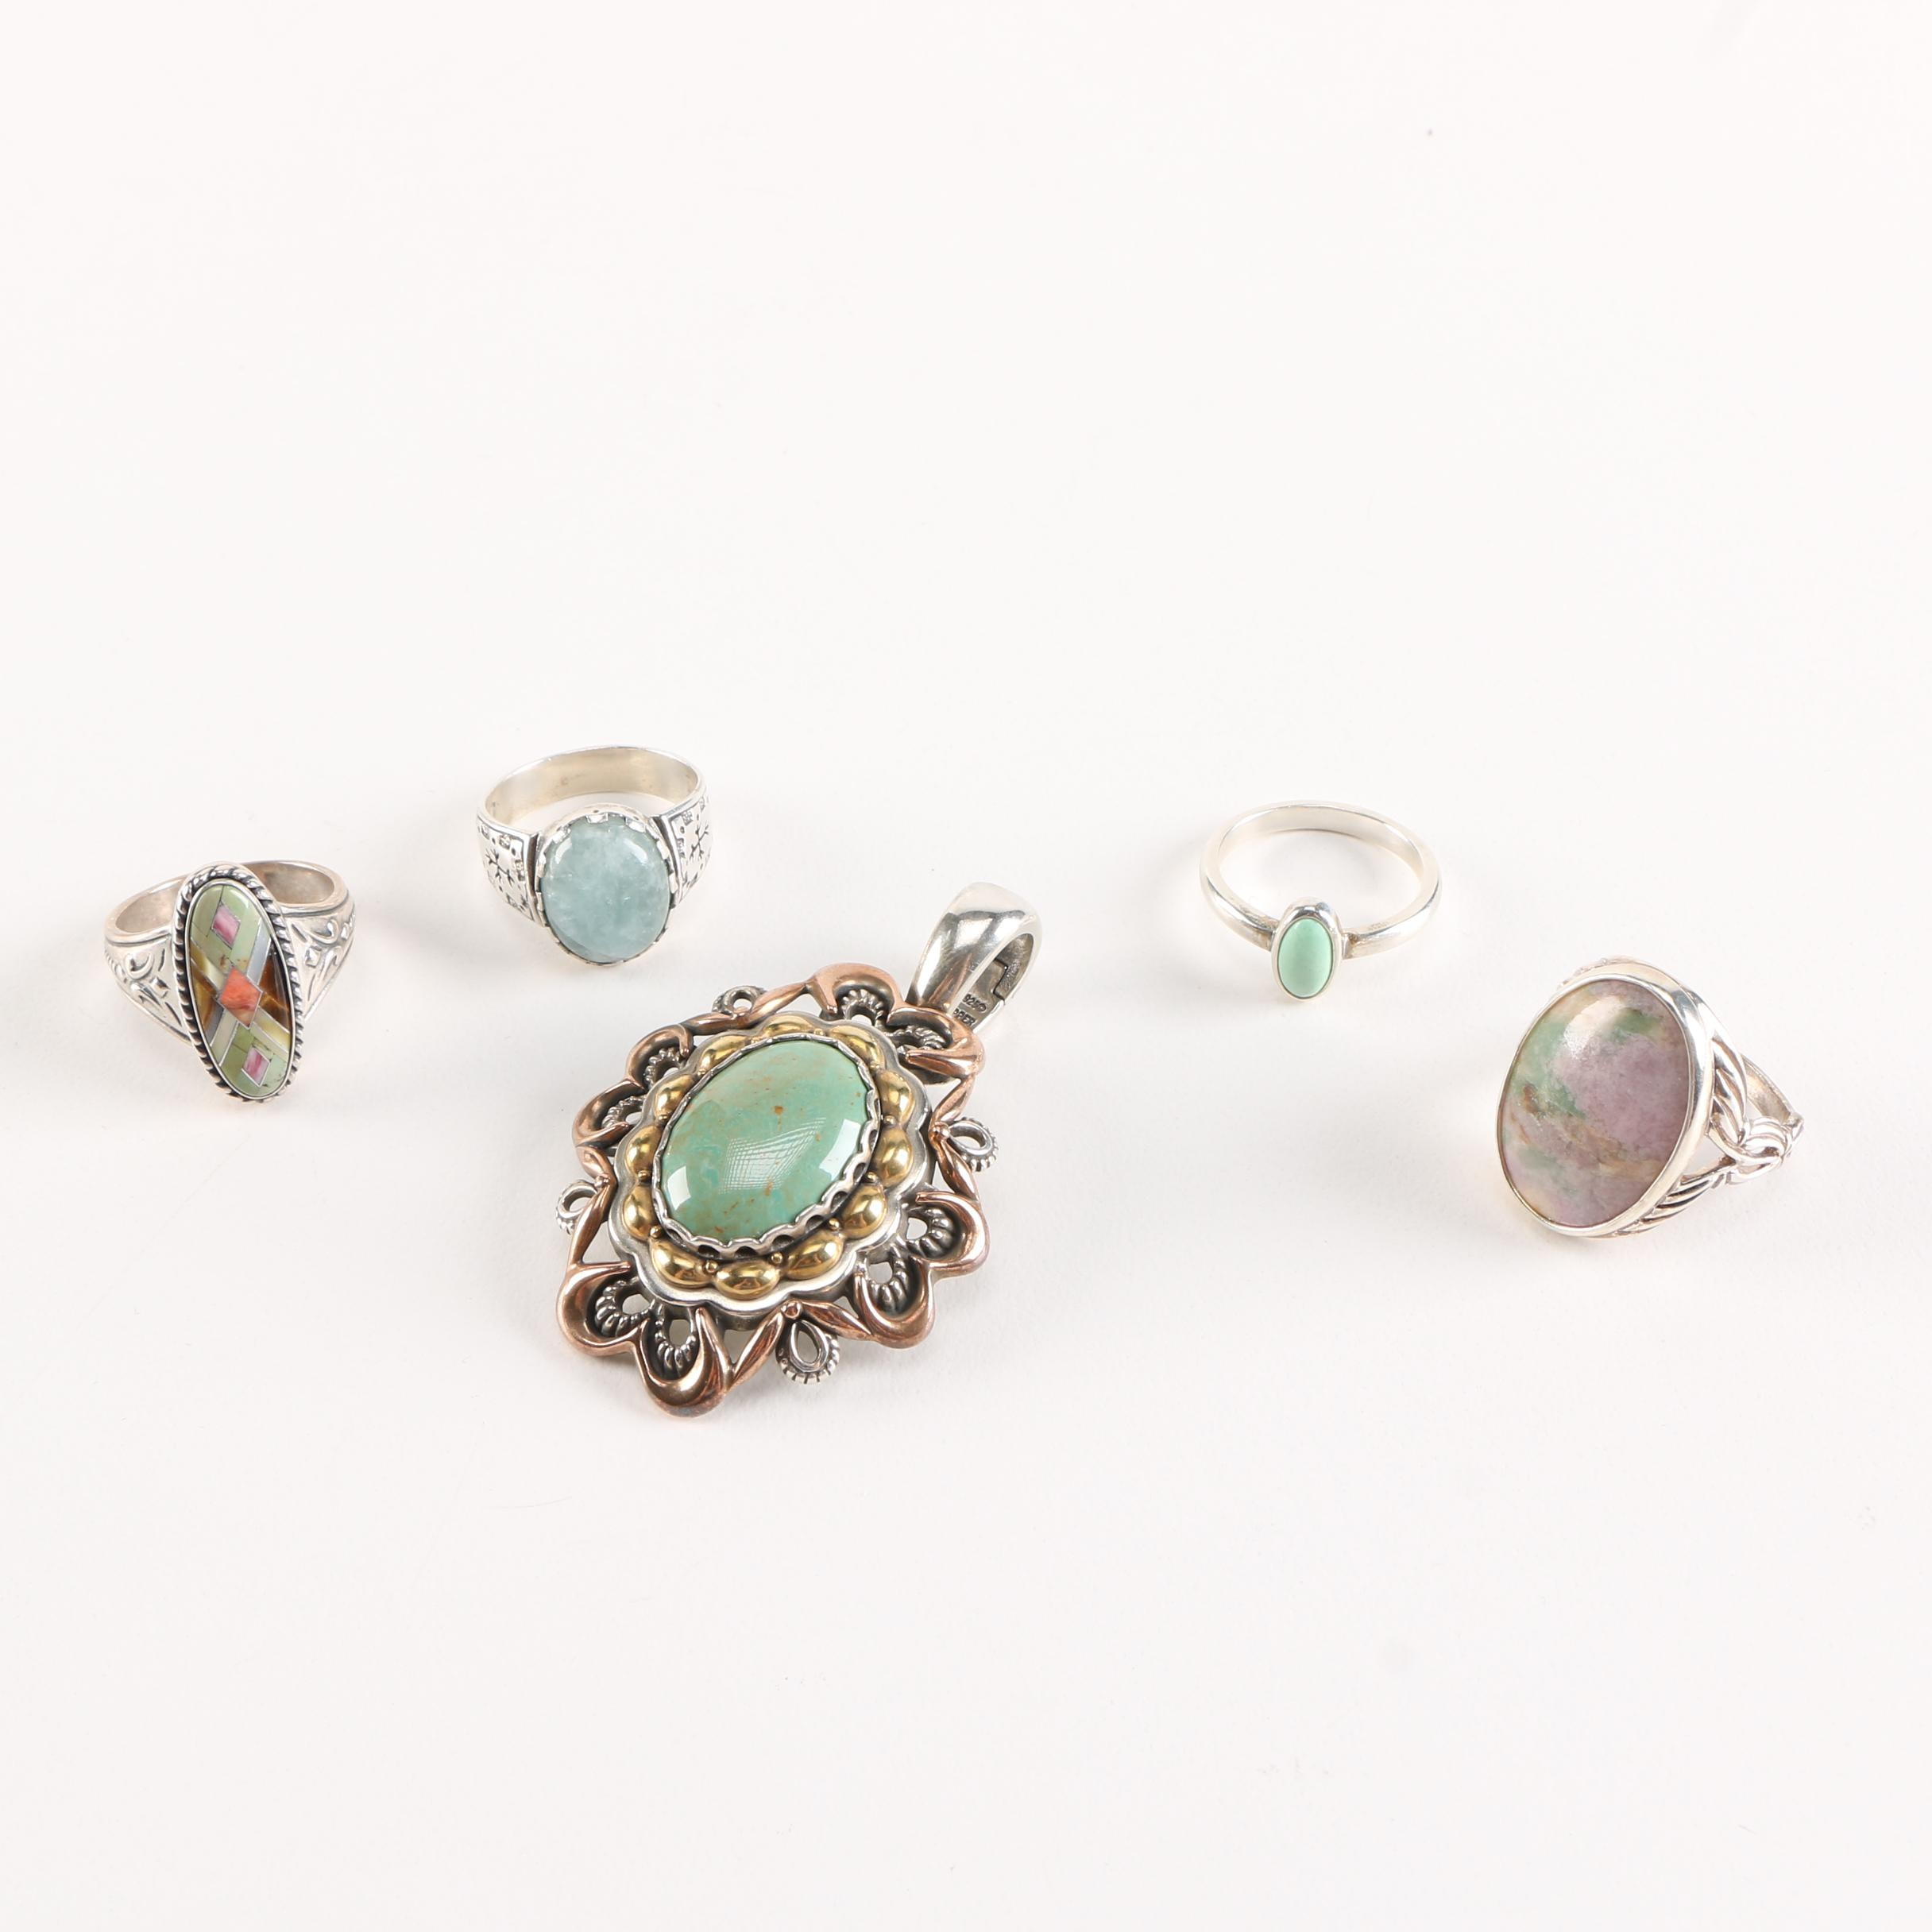 Carolyn Pollack Relios Sterling Silver Jewelry With Gemstones